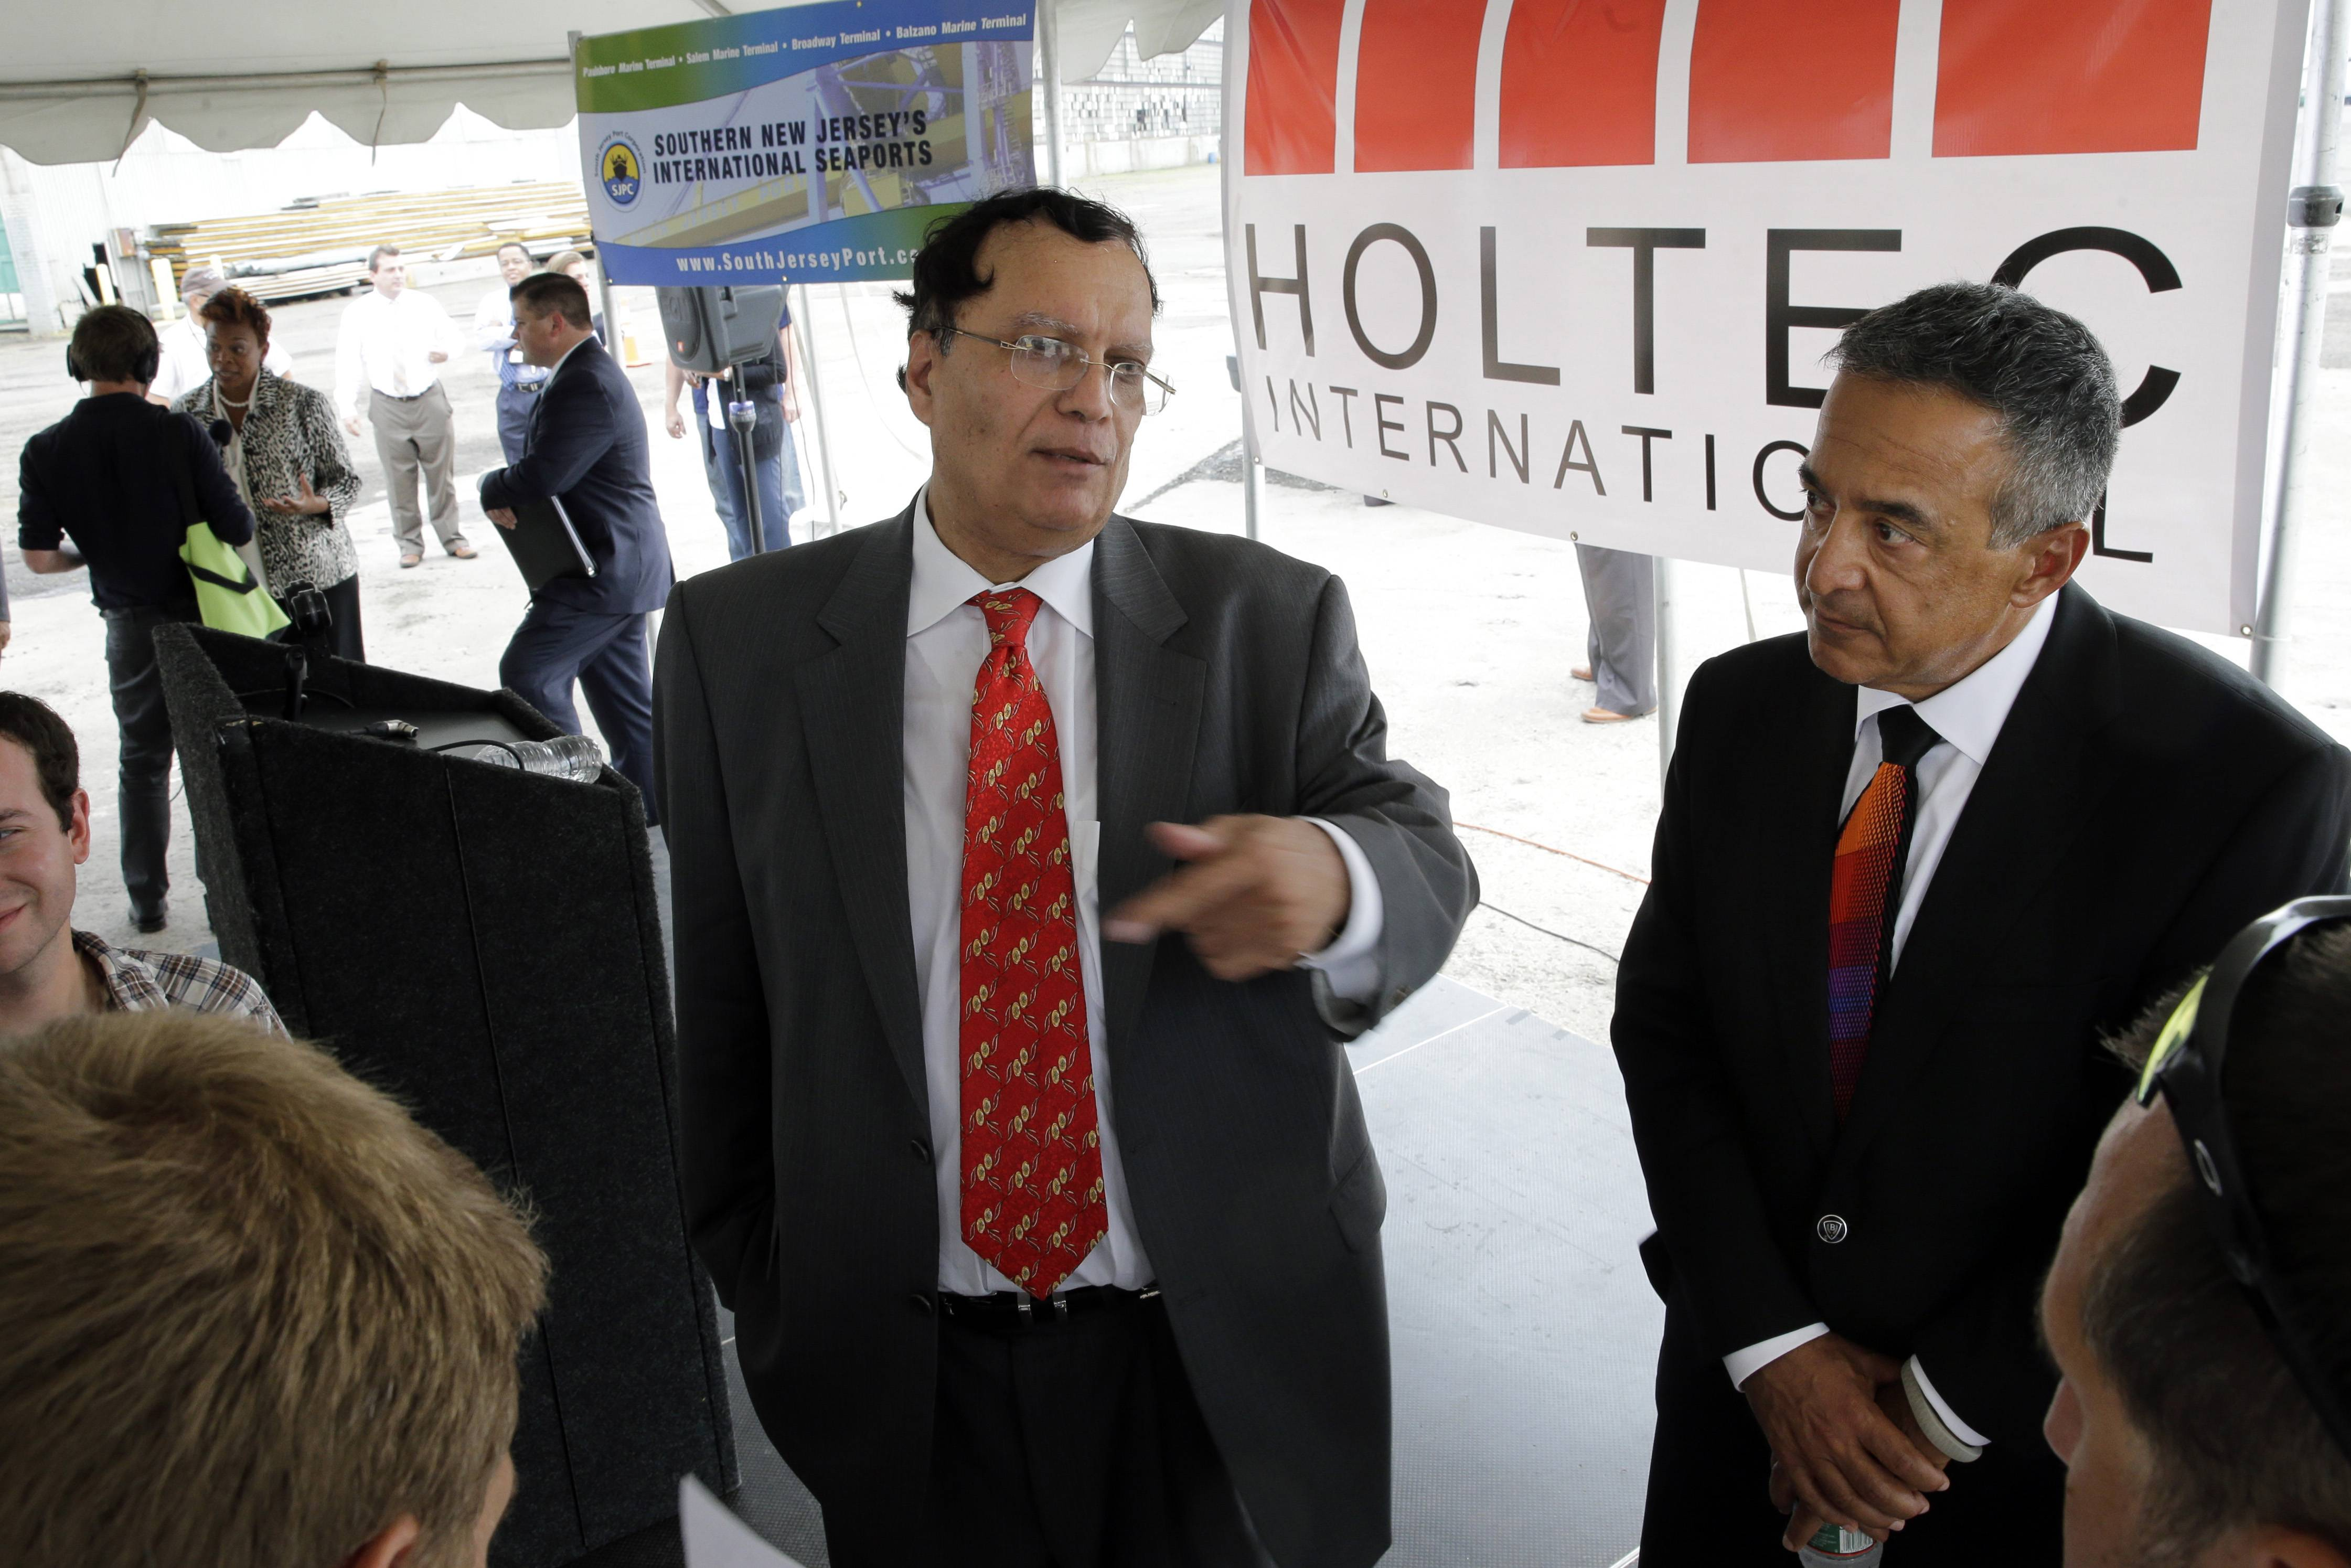 Kris Singh, center, the founder, president and CEO of Holtec International answers a question Monday in Camden, N.J. The company that makes components for power plants said it eventually expects to bring 3,000 jobs to the facility it plans to build in Camden, one of the nation's poorest cities. New Jersey raised its mandatory minimum wage this year.